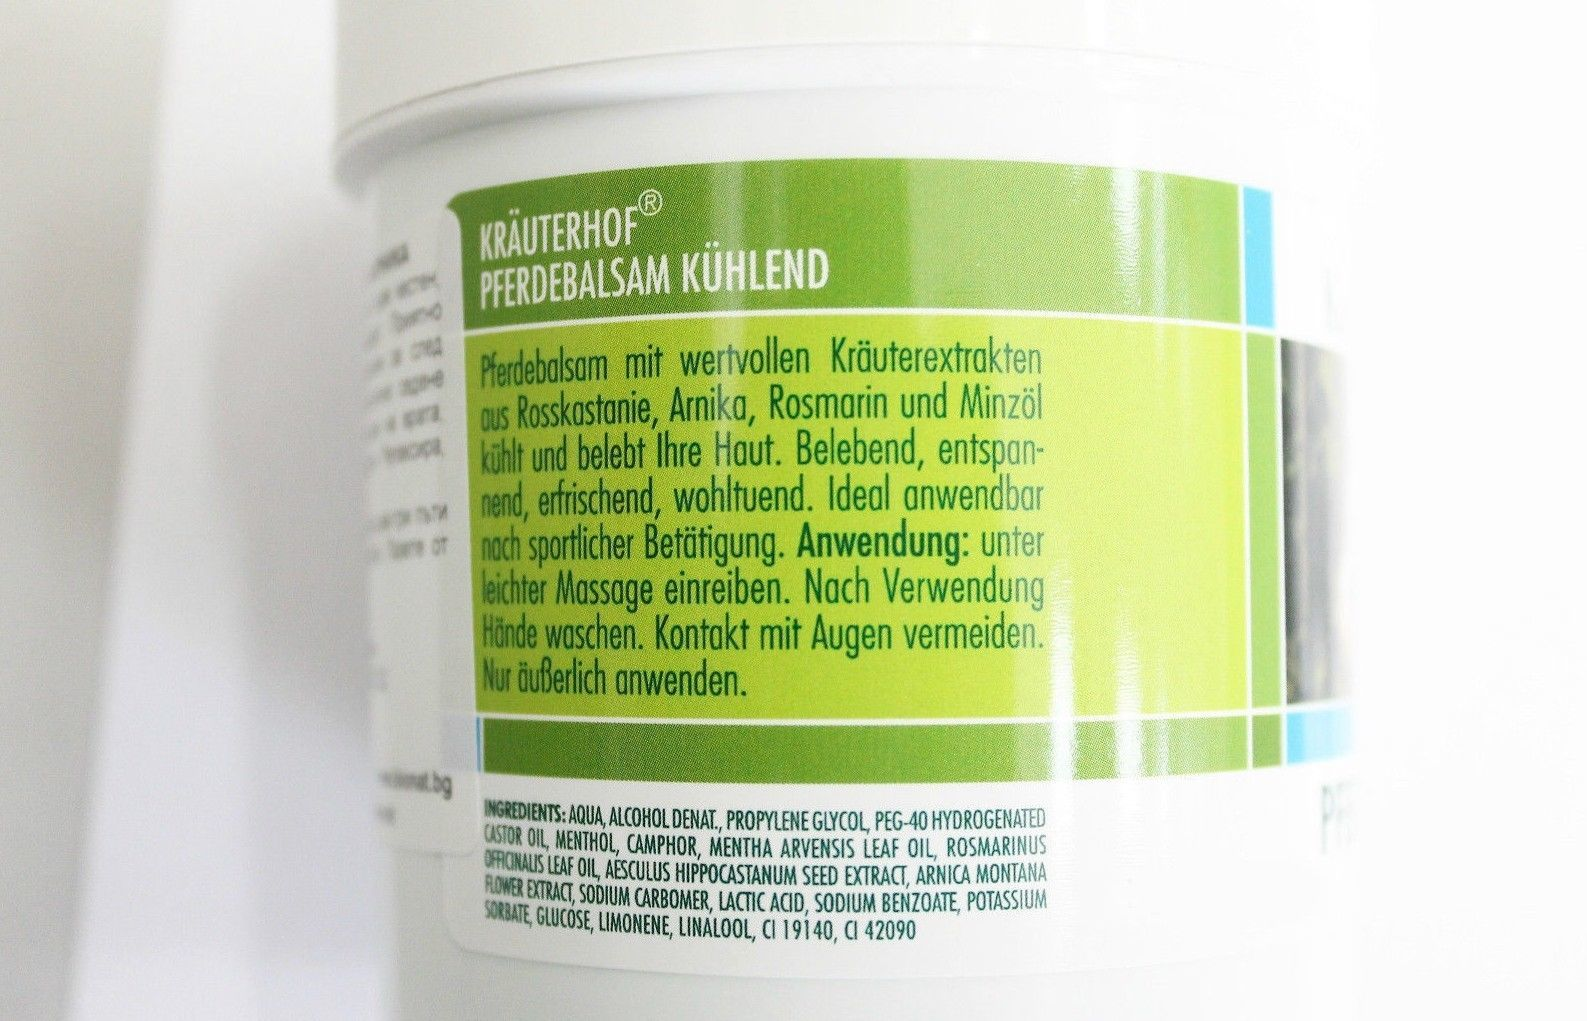 KrauterhoF Pferdebalsam GEL Massage with ARNICA 250 ml Herbal